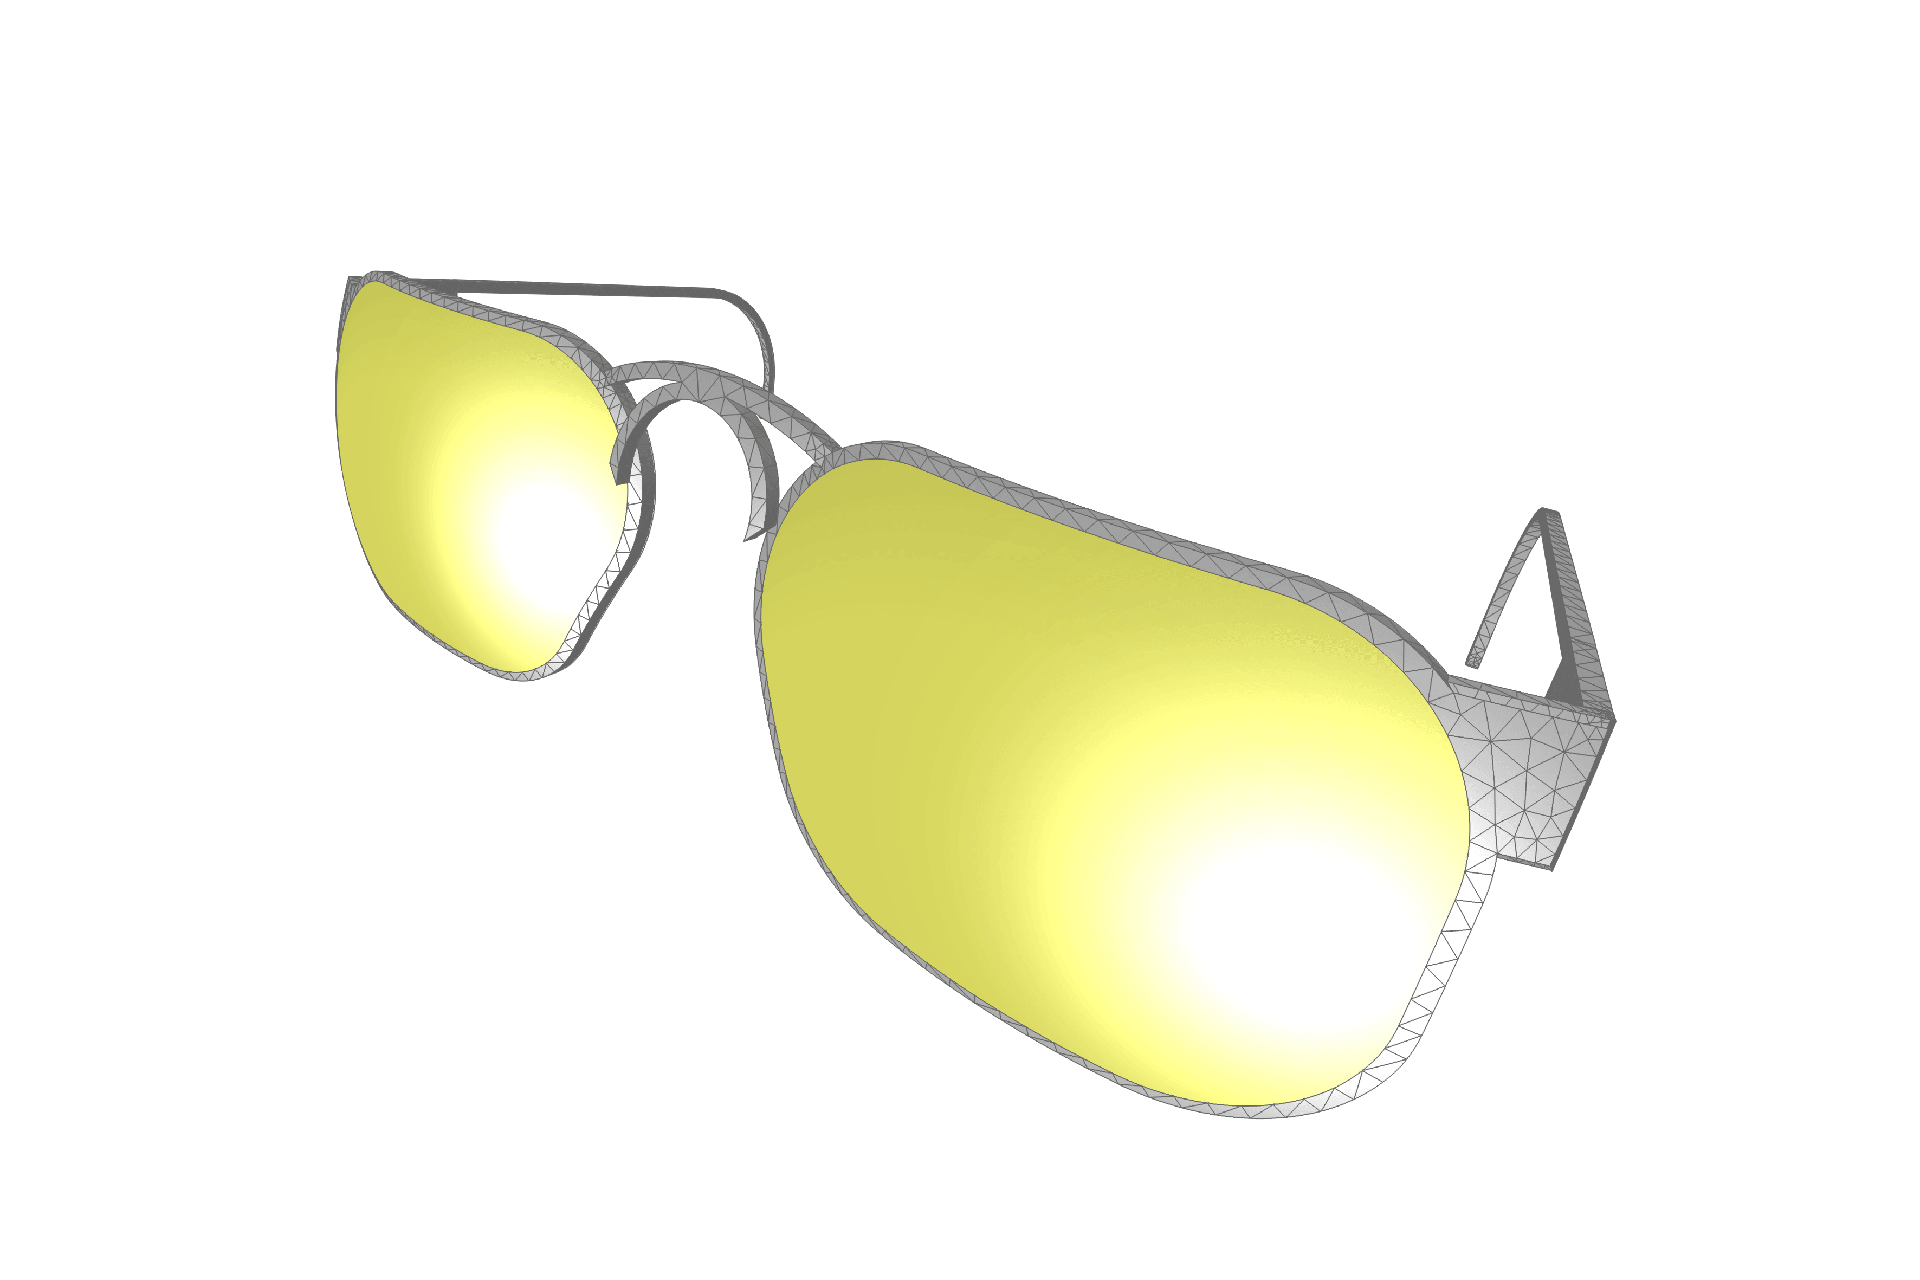 spectrum sunglasses simulation